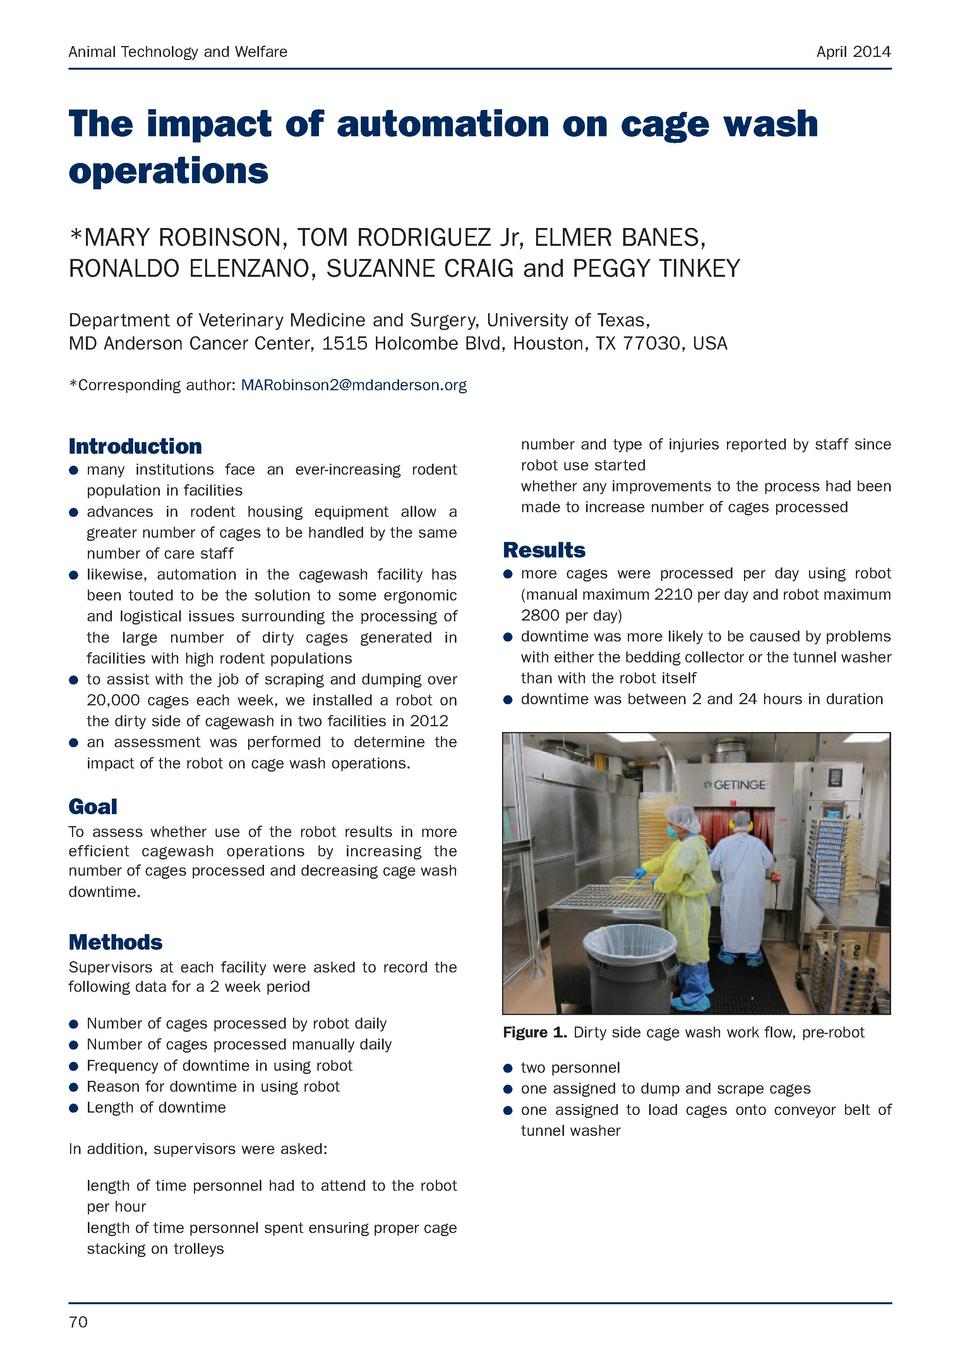 Animal Technology and Welfare  April 2014  The impact of automation on cage wash operations  MARY ROBINSON, TOM RODRIGUEZ ...